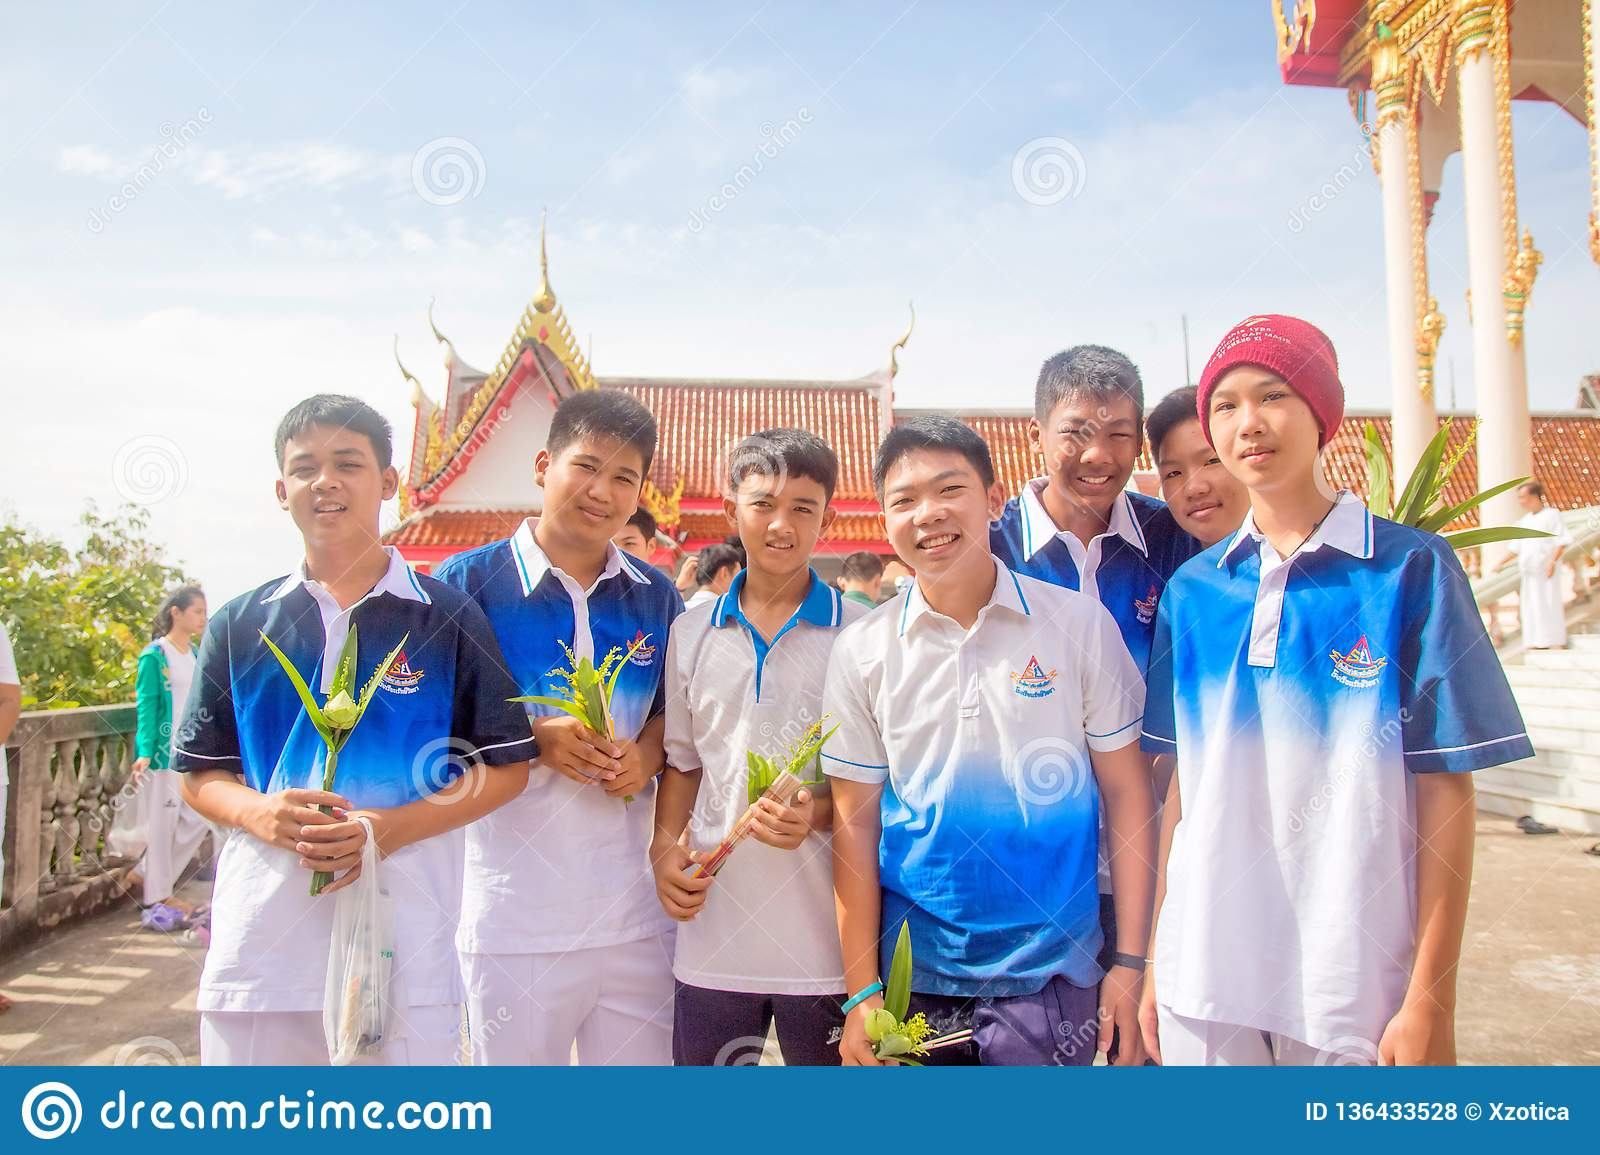 Thai students wear white clothes making a merit at the temple in Pranburi, Thailand July 21,2017